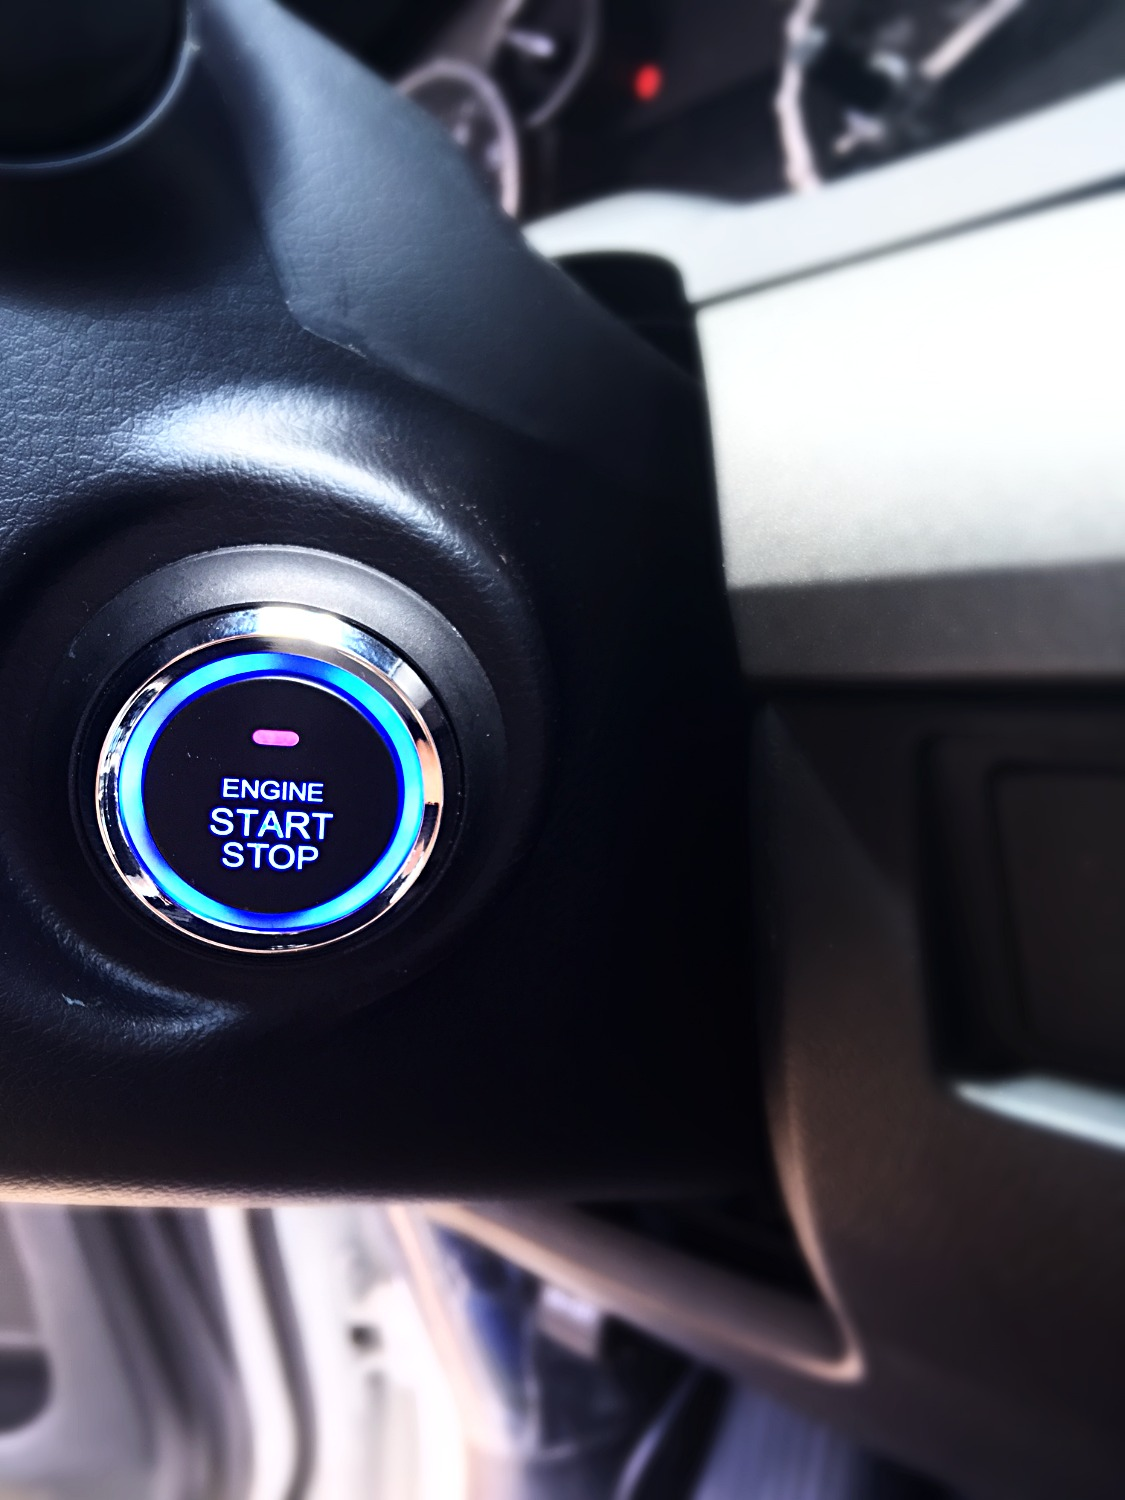 Push to start conversion